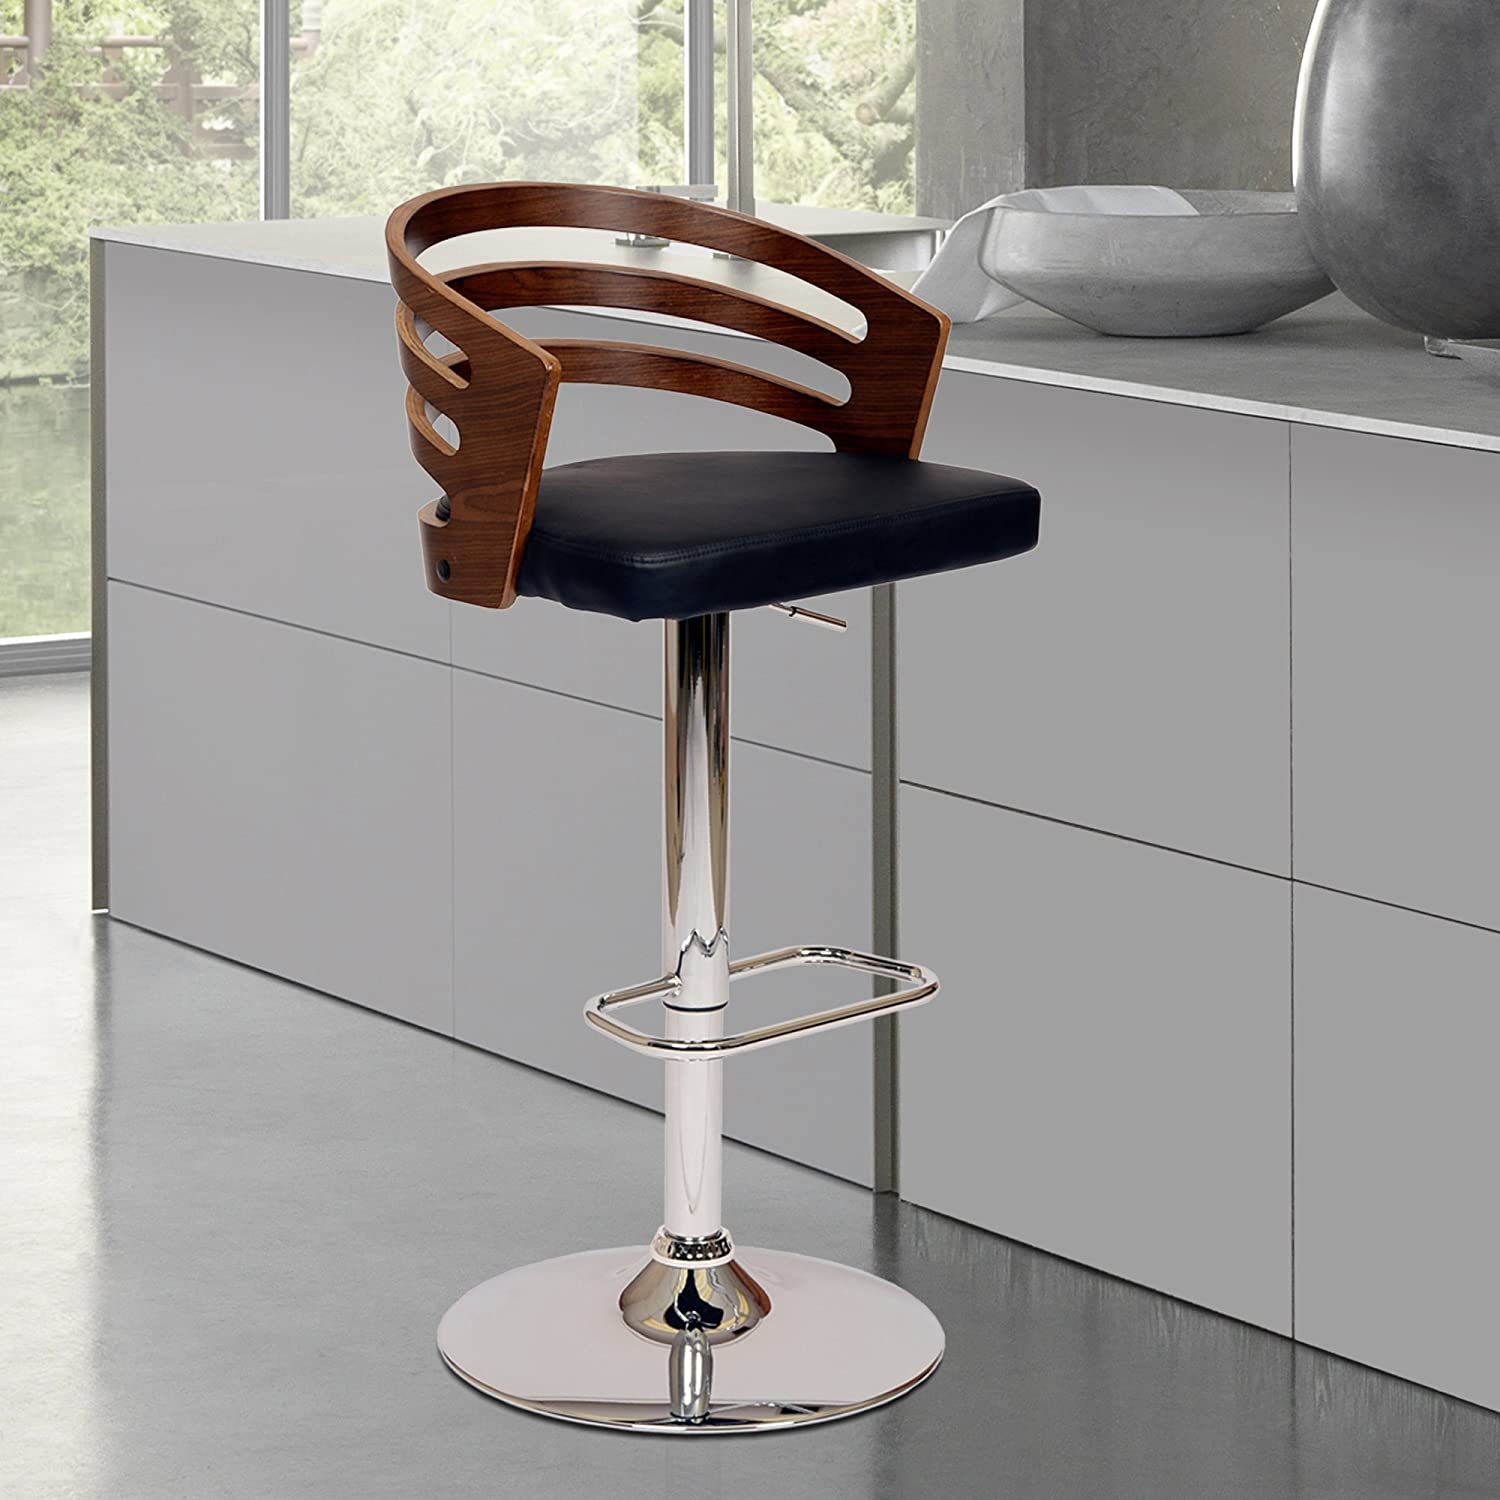 Armen Living LCADSWBABLWA Adele Swivel Barstool in Black Faux Leather and Chrome Finish, 36-44 Adjustable Height